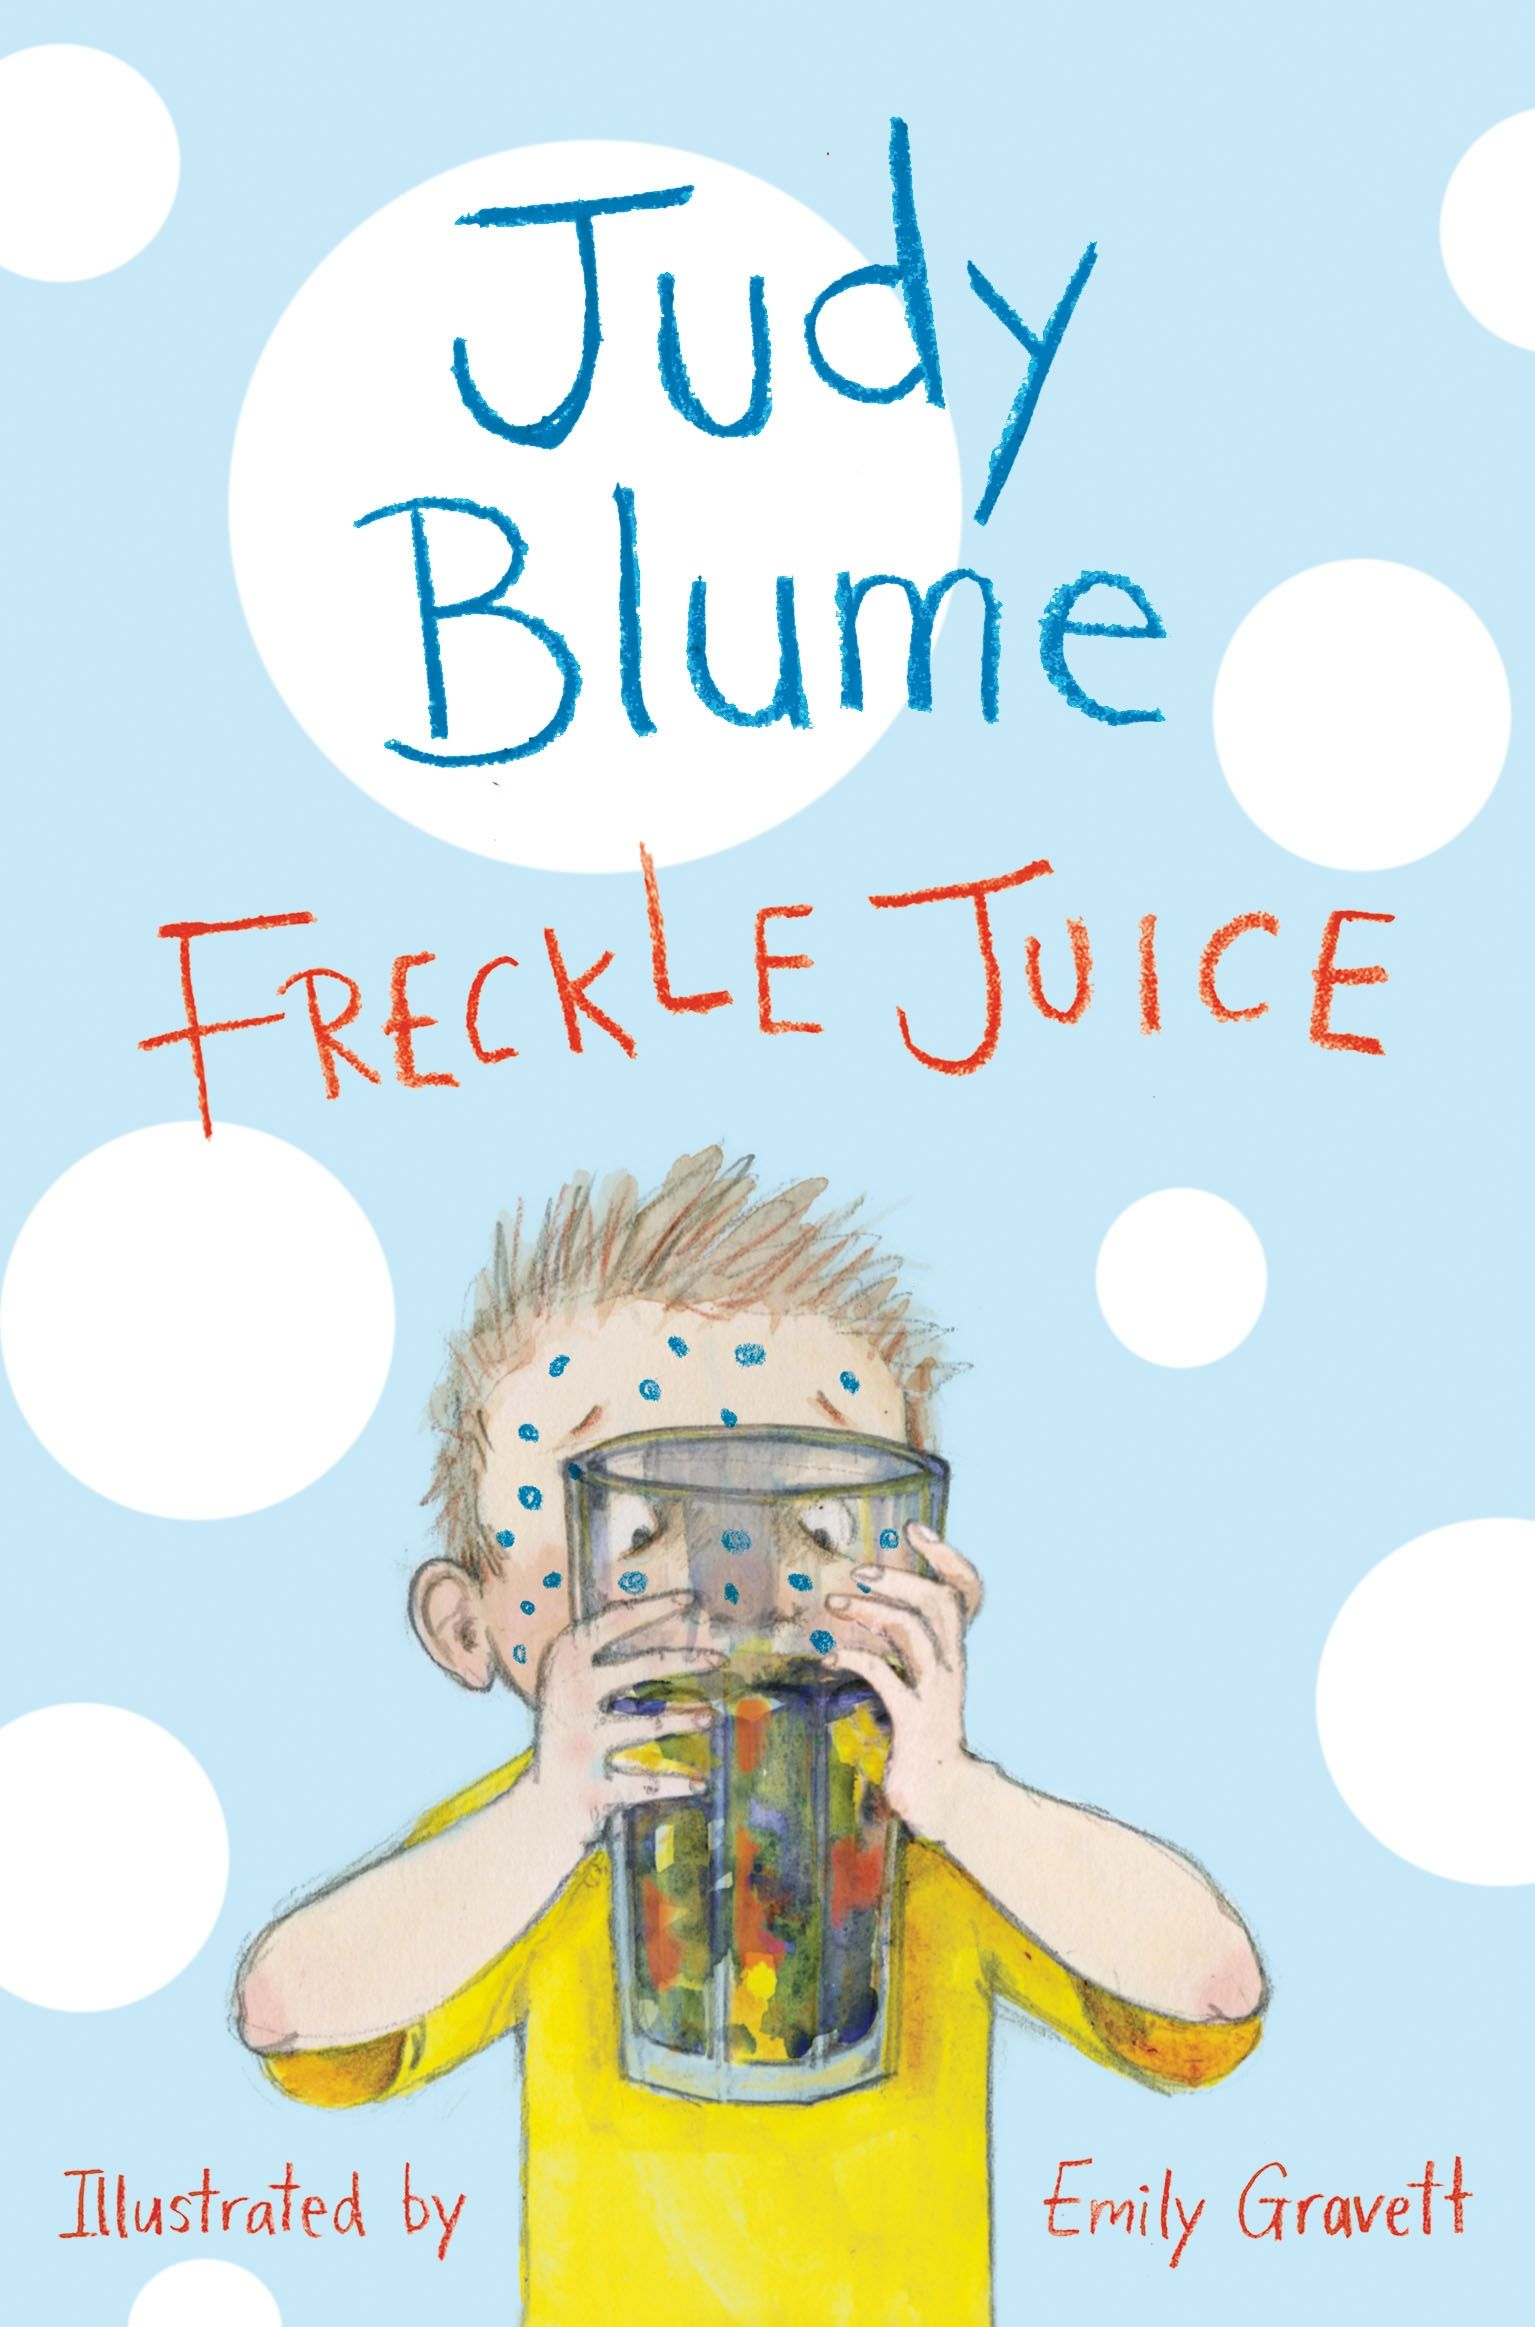 Worksheets Freckle Juice Worksheets gorgeous new freckle juice cover drawn by the amazing emily gravett gravett